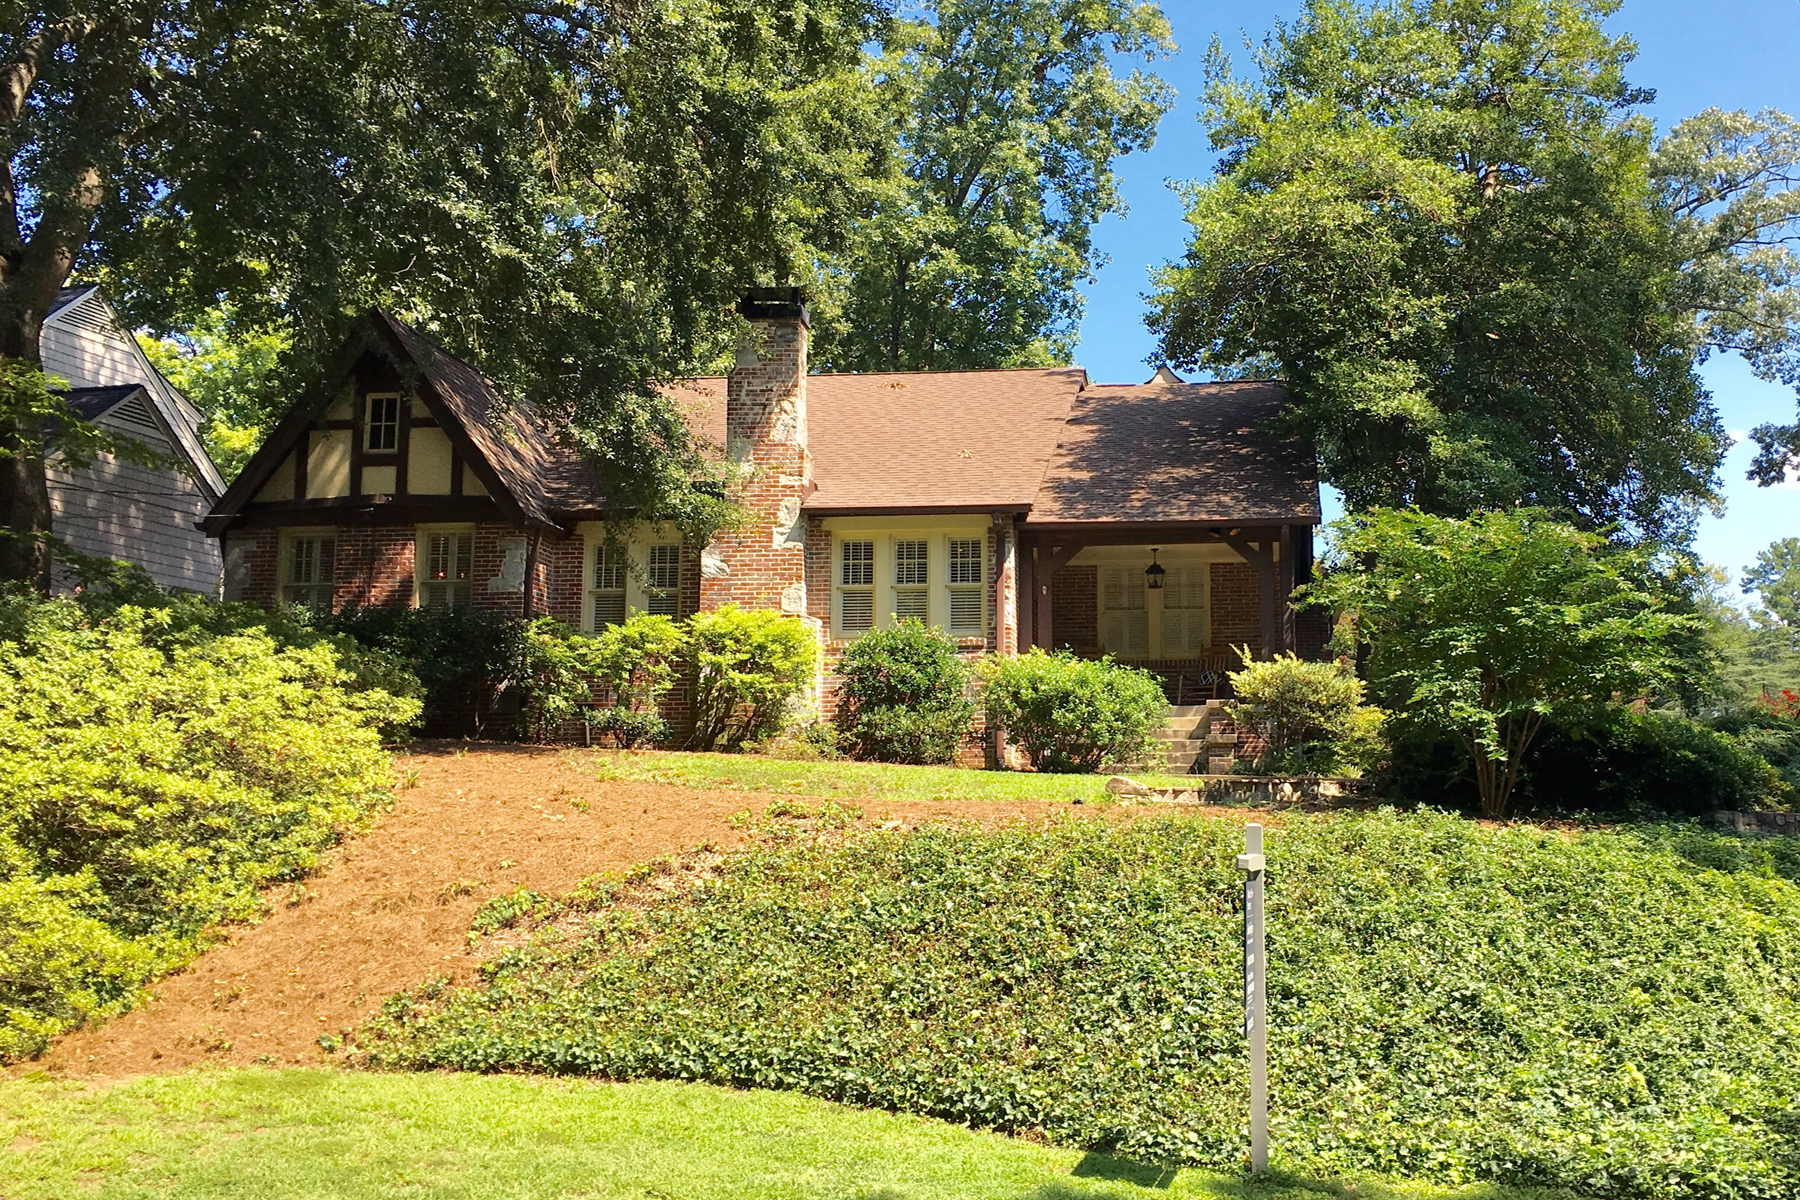 Single Family Home for Sale at Charming Renovated Tudor 2727 N Hills Drive NE Garden Hills, Atlanta, Georgia, 30305 United States